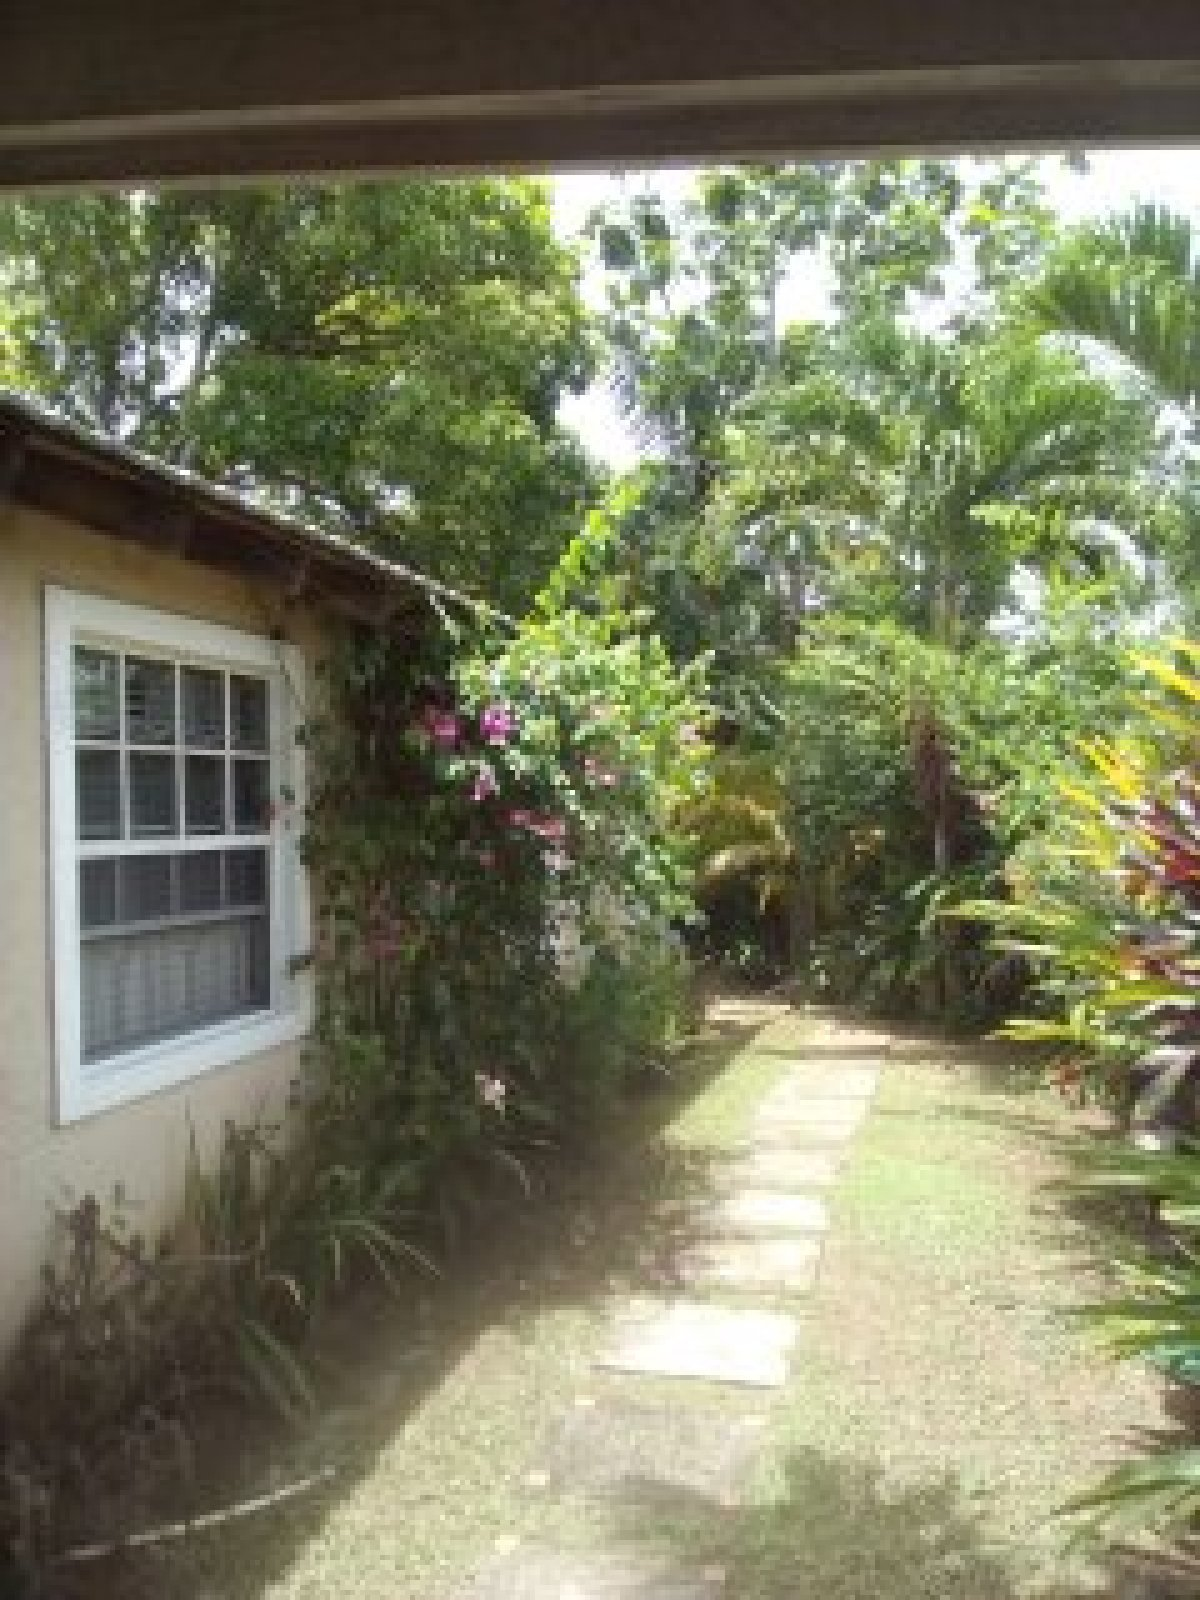 3 bedroom house 4 bathroom for rent in orange bay country